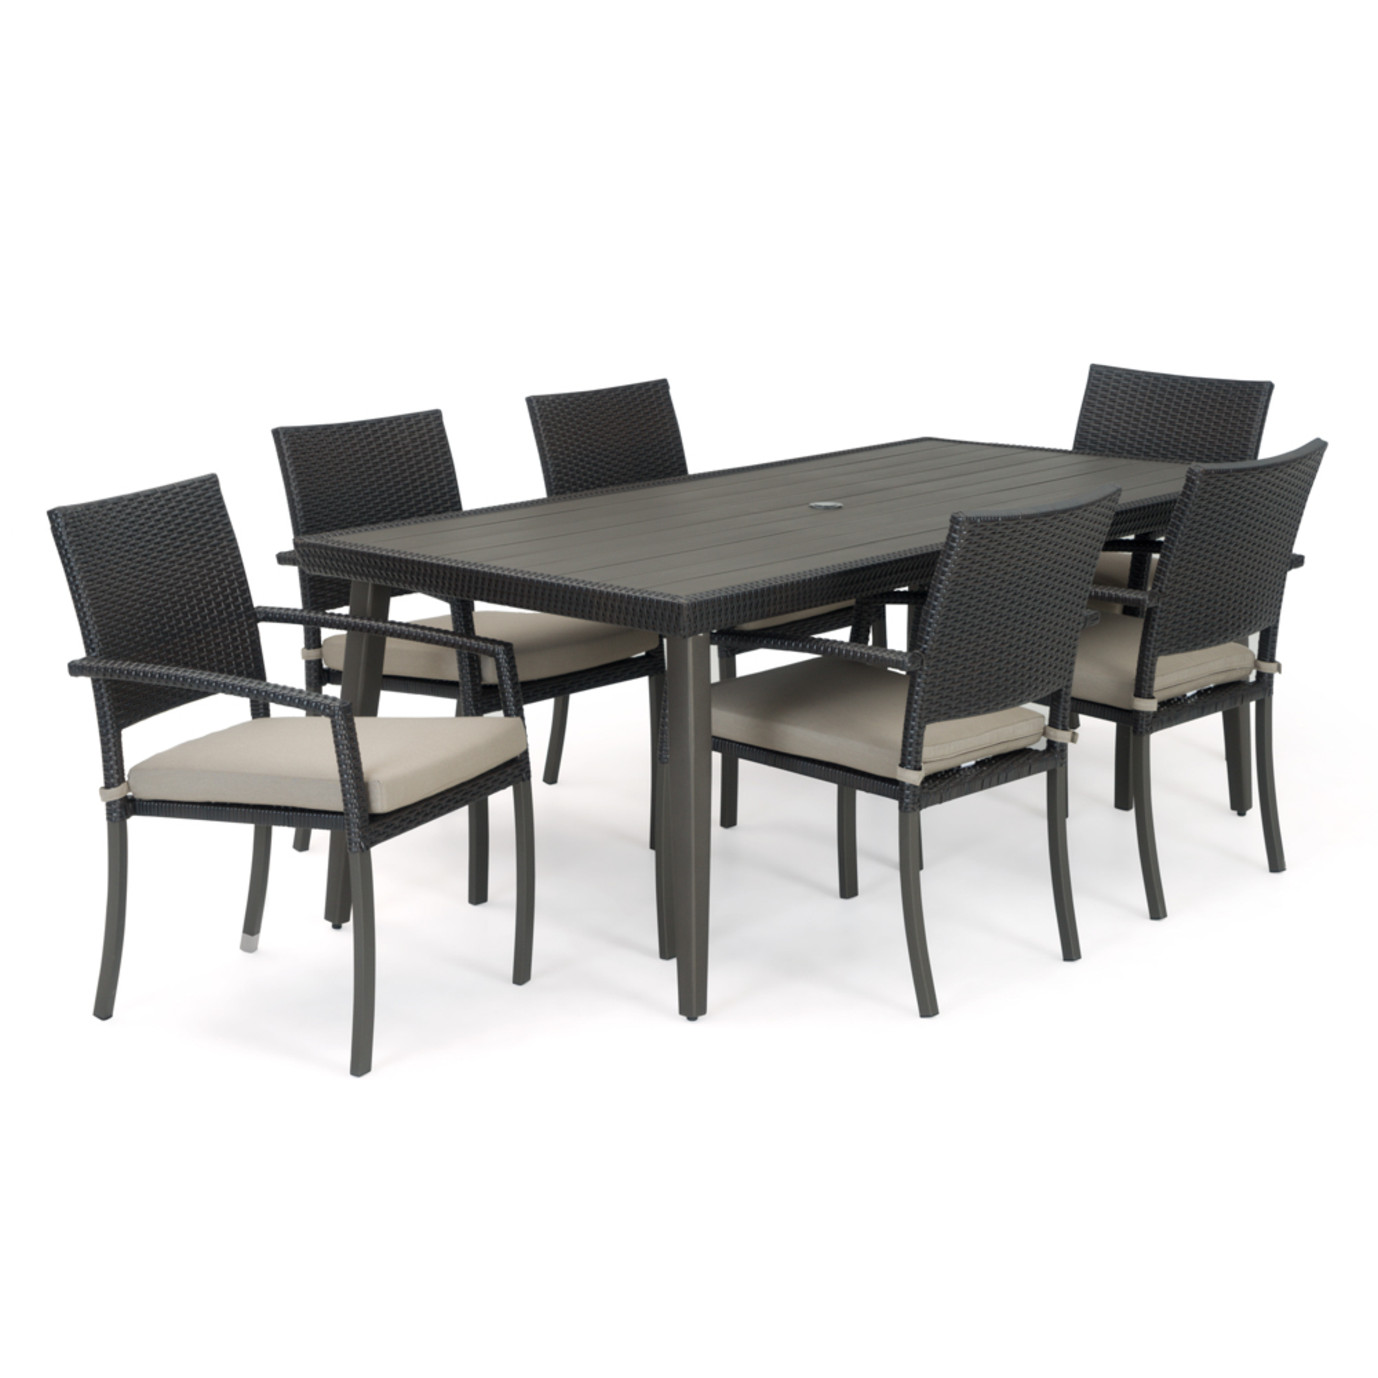 Portofino® Casual 7pc Dining Set - Taupe Mist